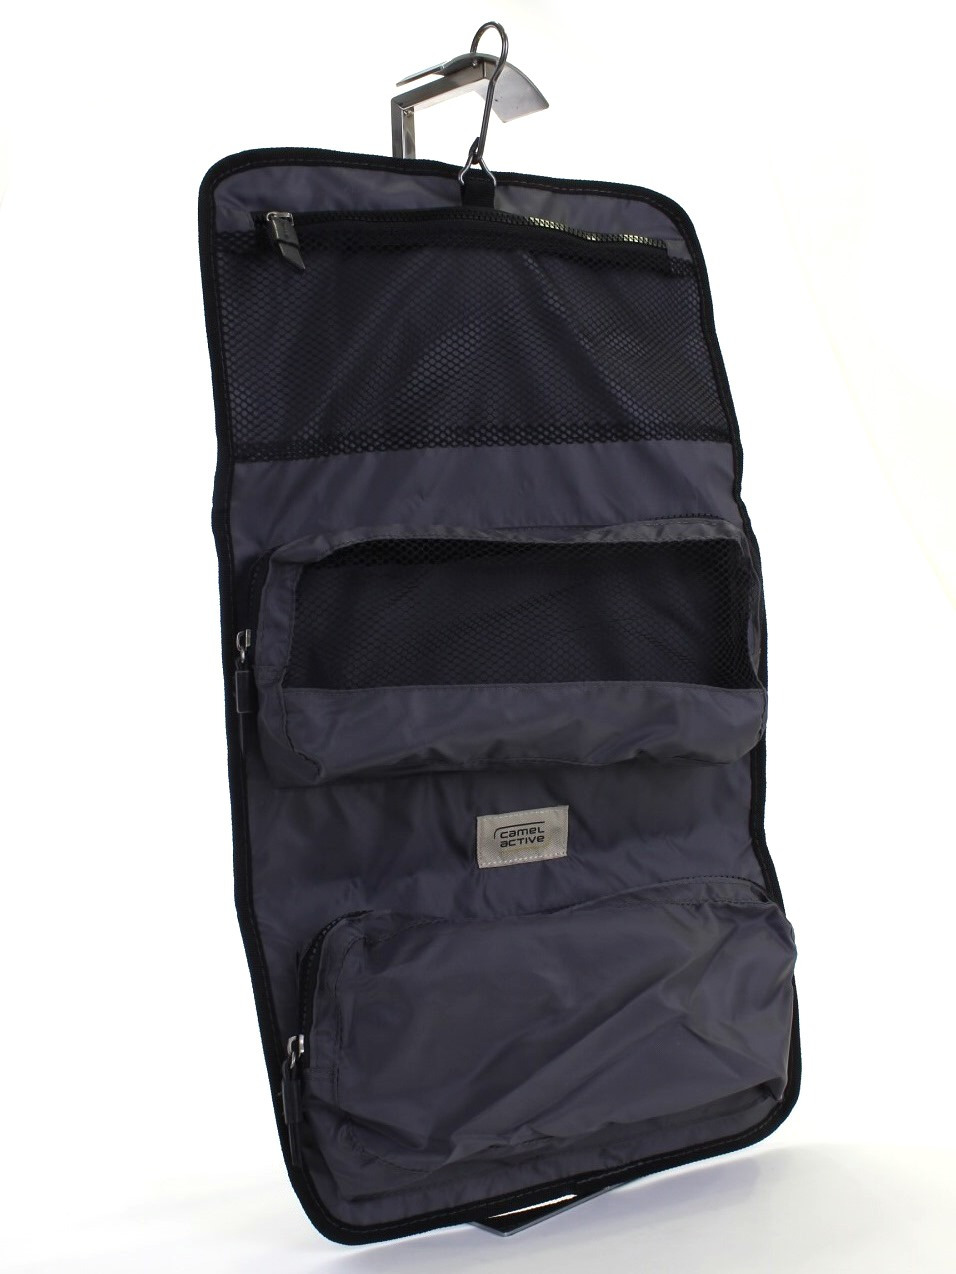 Bags Camel Active - 385 272401